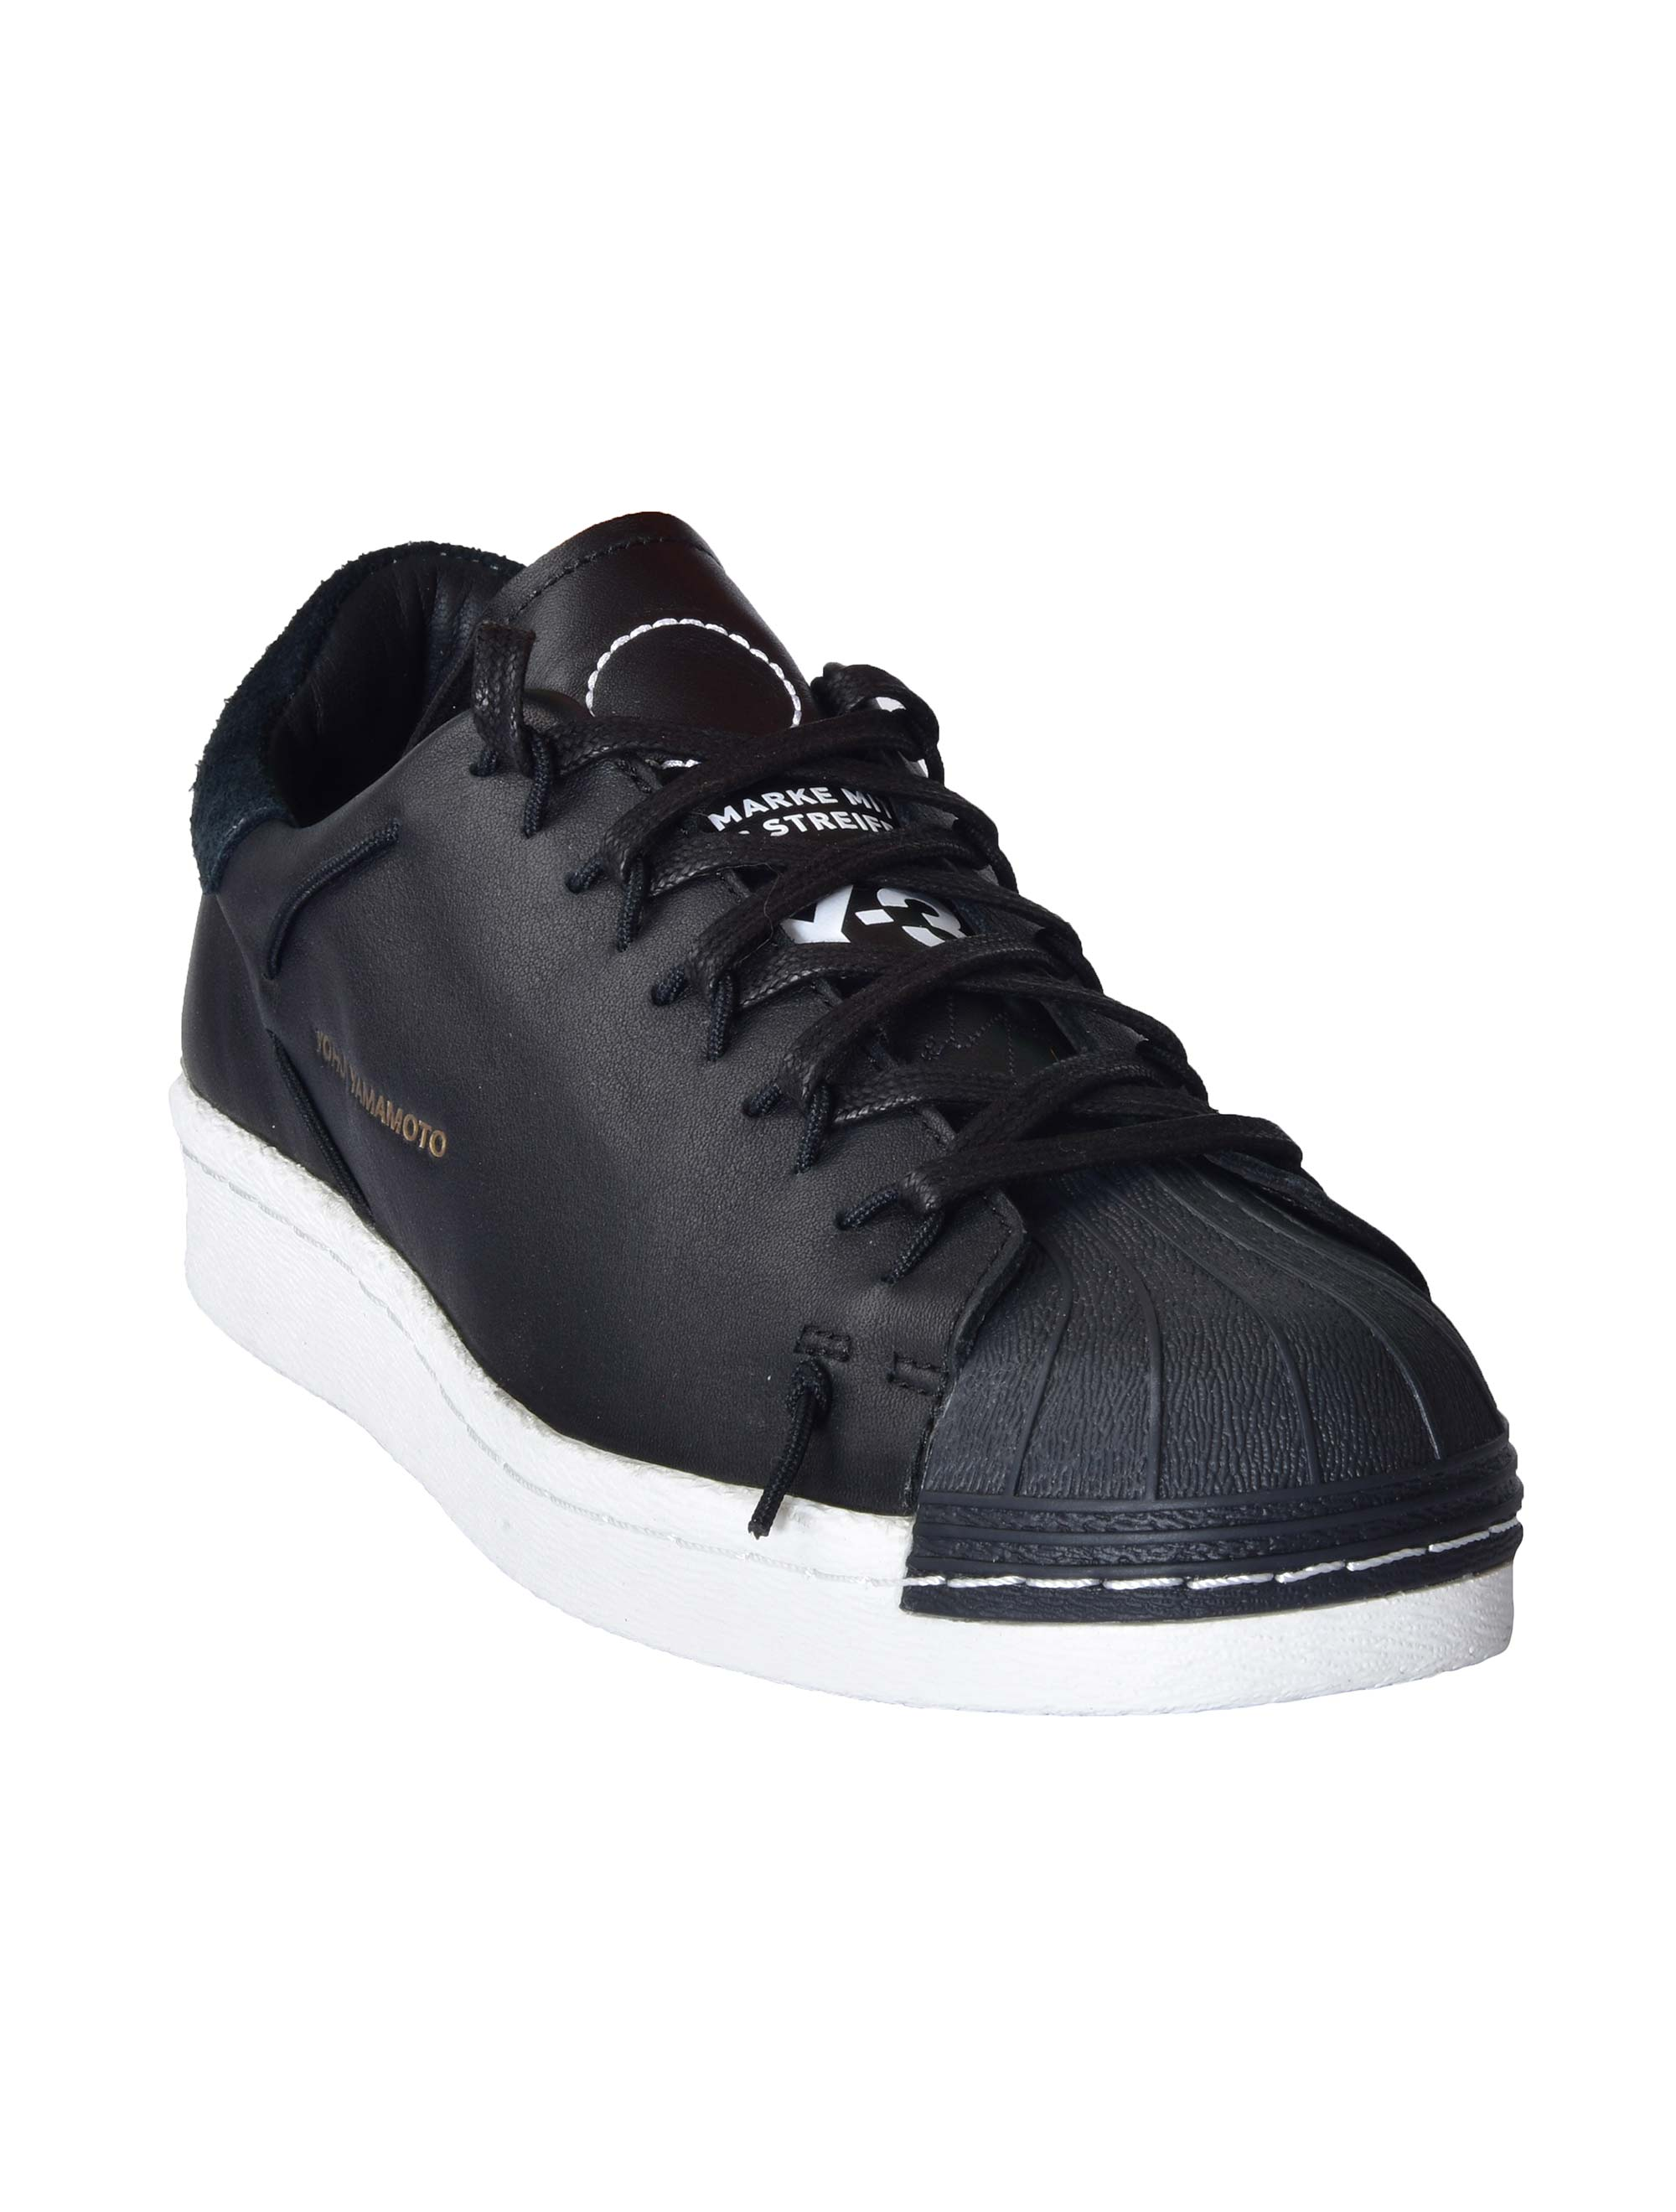 fb1dabefc476 Mimma Ninni – Luxury and Fashion Shopping. Adidas Y-3 Super Knot Low ...